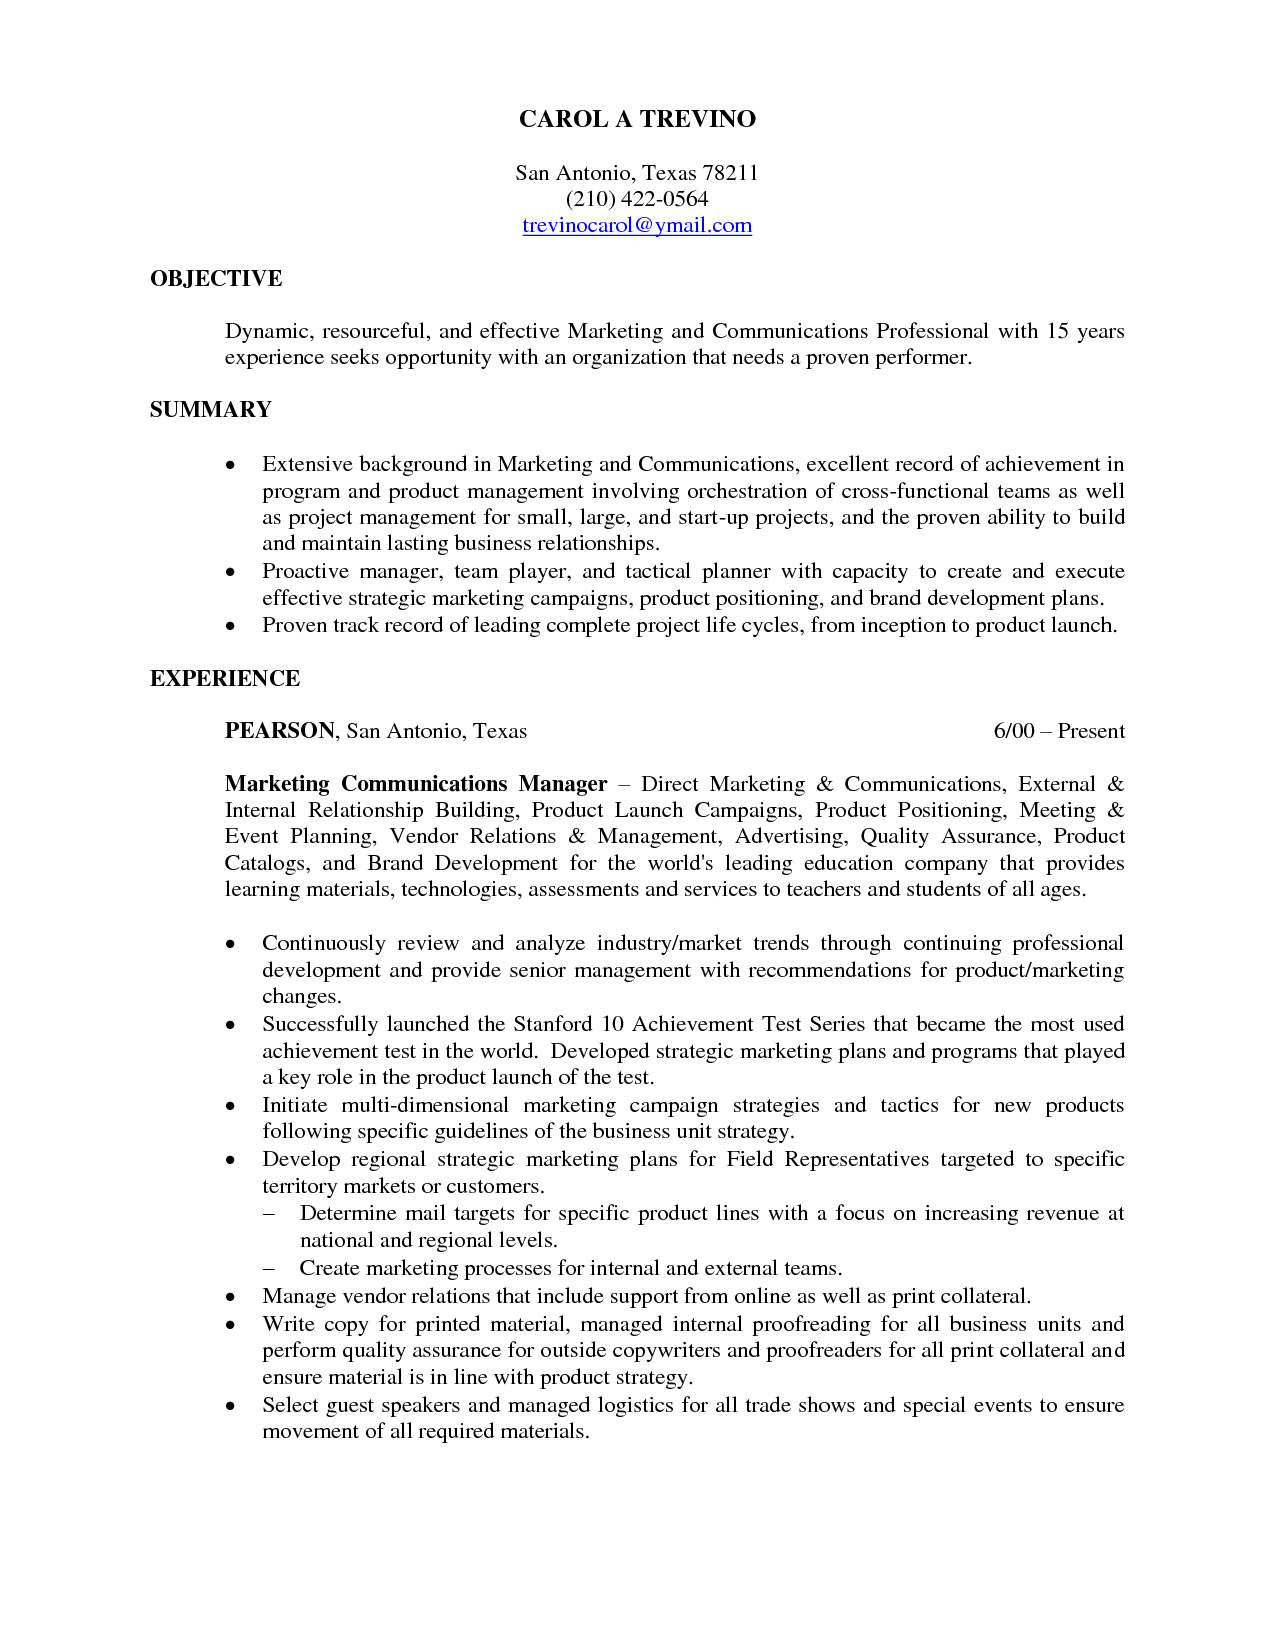 15 Objective Resume Examples  Samplebusinessresumem. Yoga Teacher Resume Samples Template. Track Hours In Excel Template. Questions To Ask On Phone Interview Template. Rocket League Xbox Price Spreadsheet. Nursing Care Plan For Dementia Template. Thank You Letter Examples Template. Snapchat Geofilter Template Download. Acord Insurance Certificate